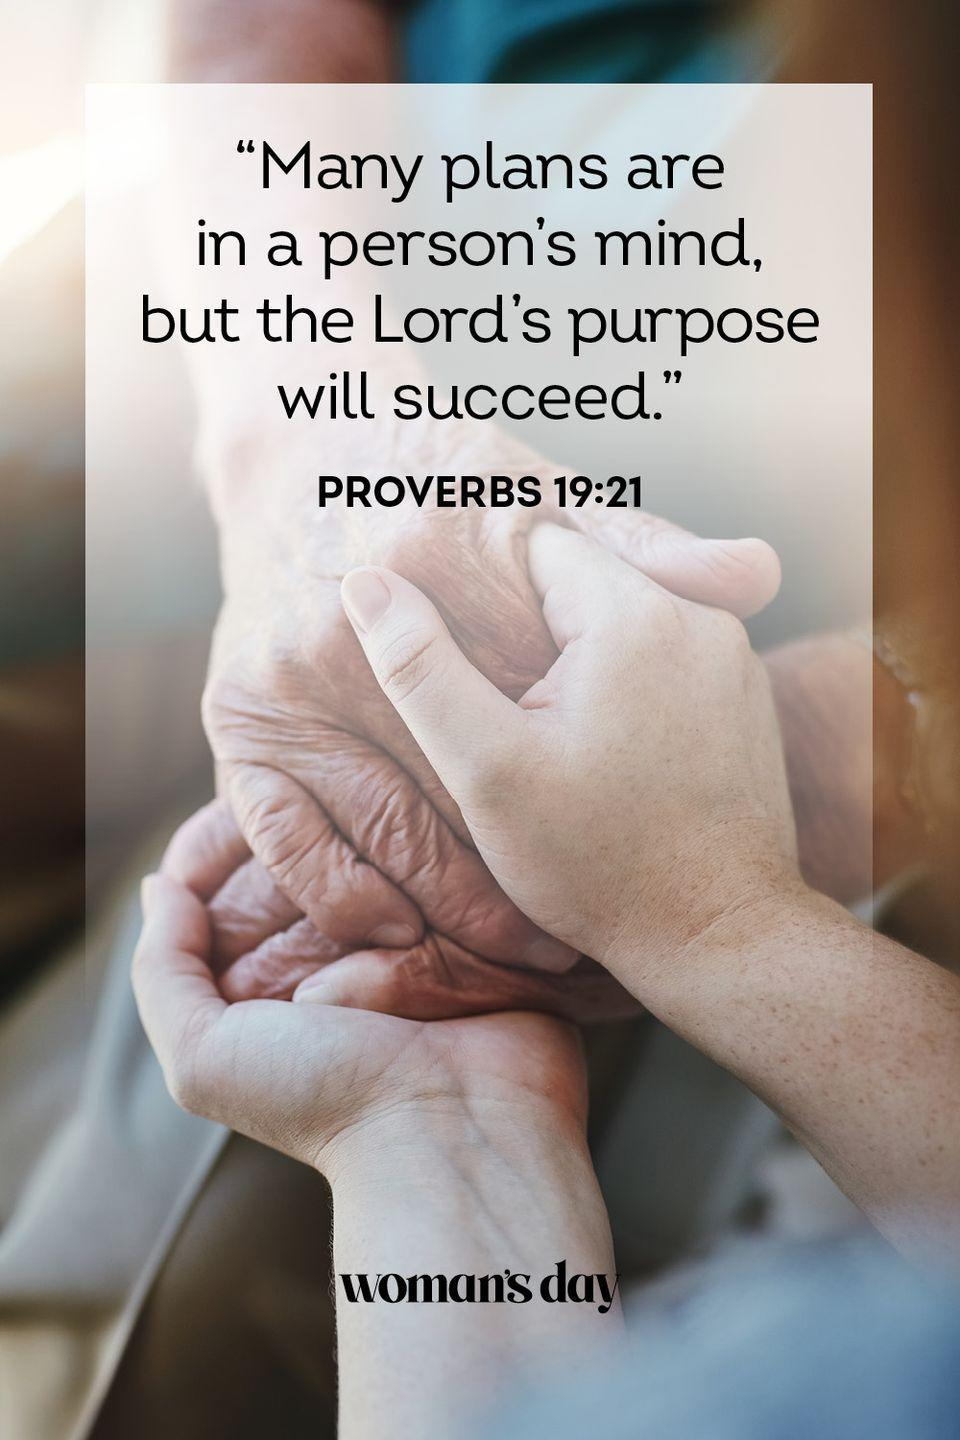 """<p>""""Many plans are in a person's mind, but the Lord's purpose will succeed."""" — Proverbs 19:21</p><p><strong>The Good News: </strong>Nothing perseveres longer than God's plan. If we toil in the wrong direction, that is wasted persistence. We must stop and take stock every once in a while that we are still following the Lord in all we do. That way we can ensure that we're persevering for God's greater path for us.</p>"""